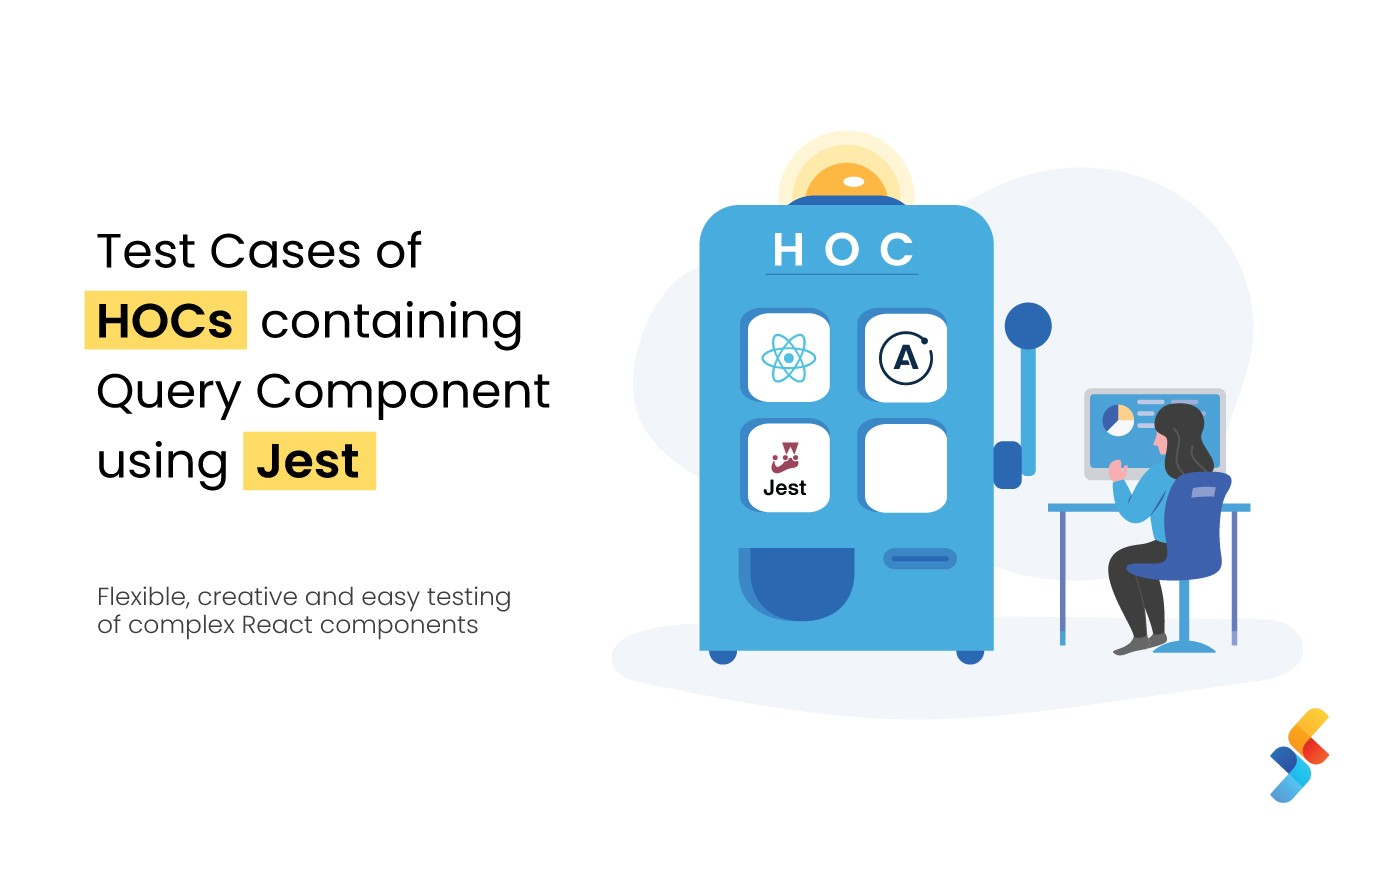 Query Component using Jest